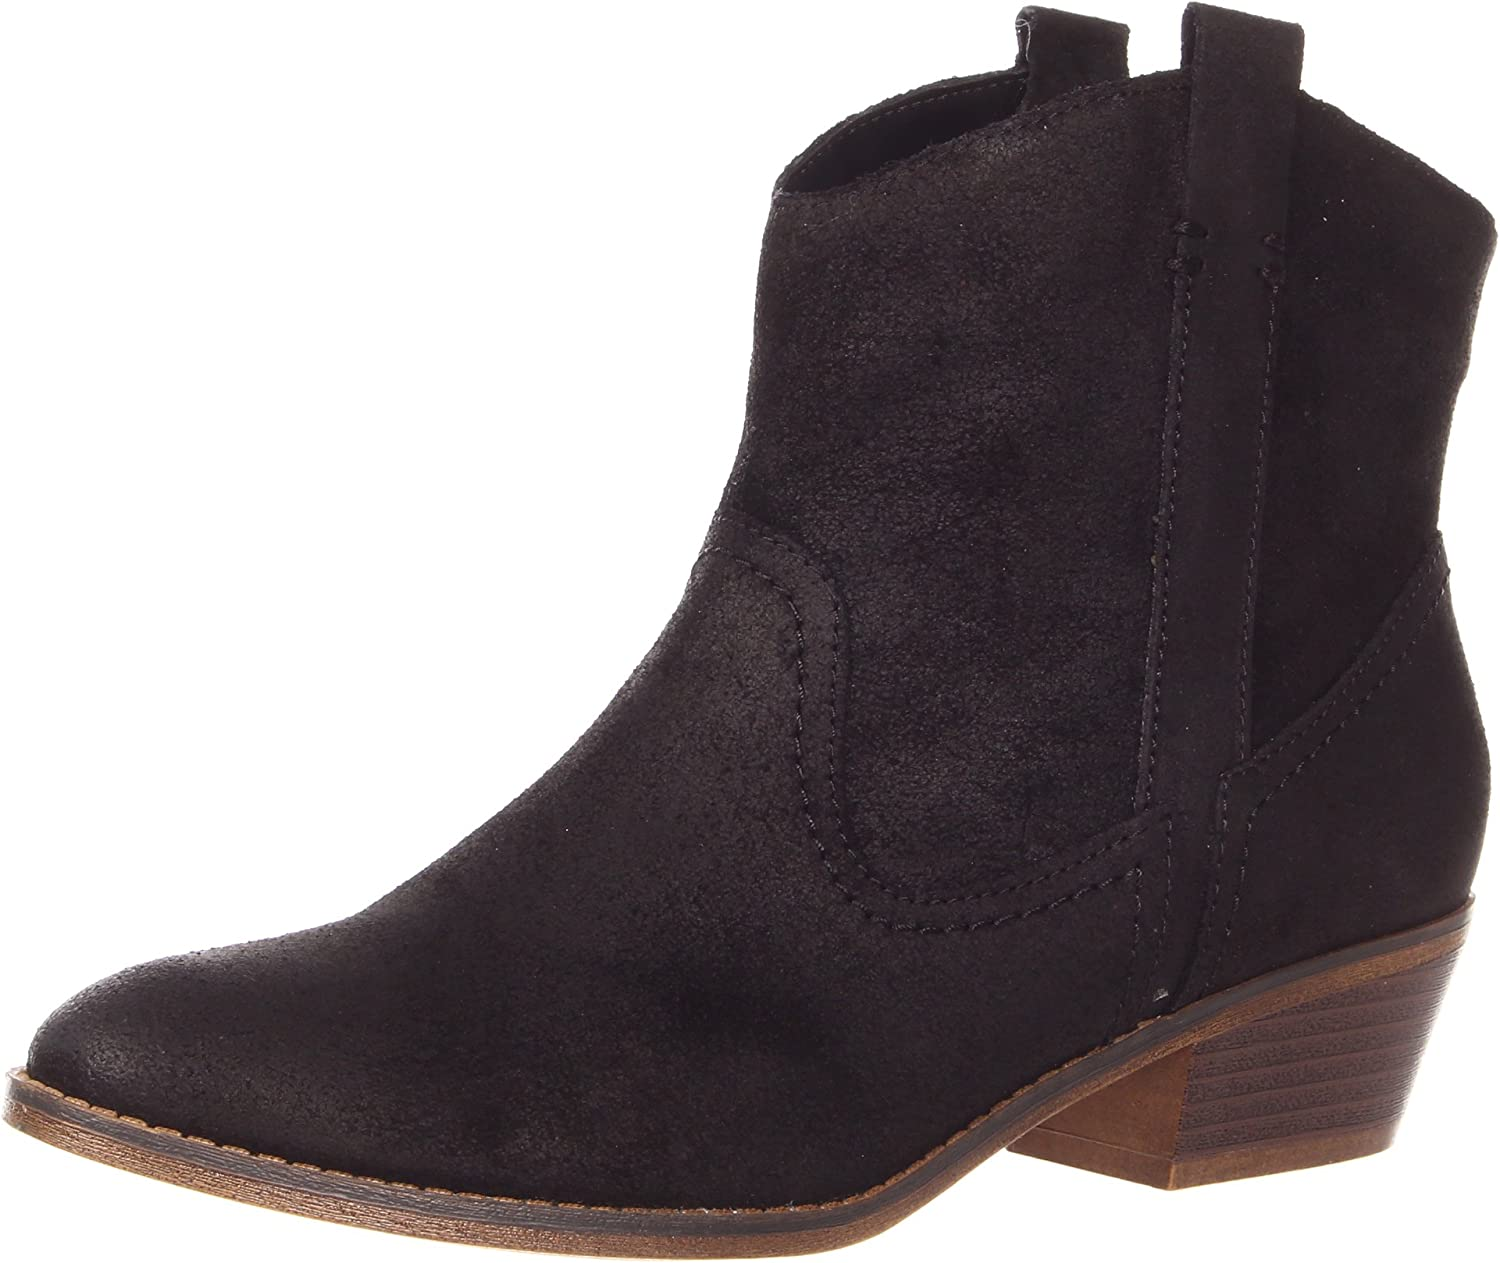 Kenneth Cole famous Topics on TV REACTION Tale-Spin Women's